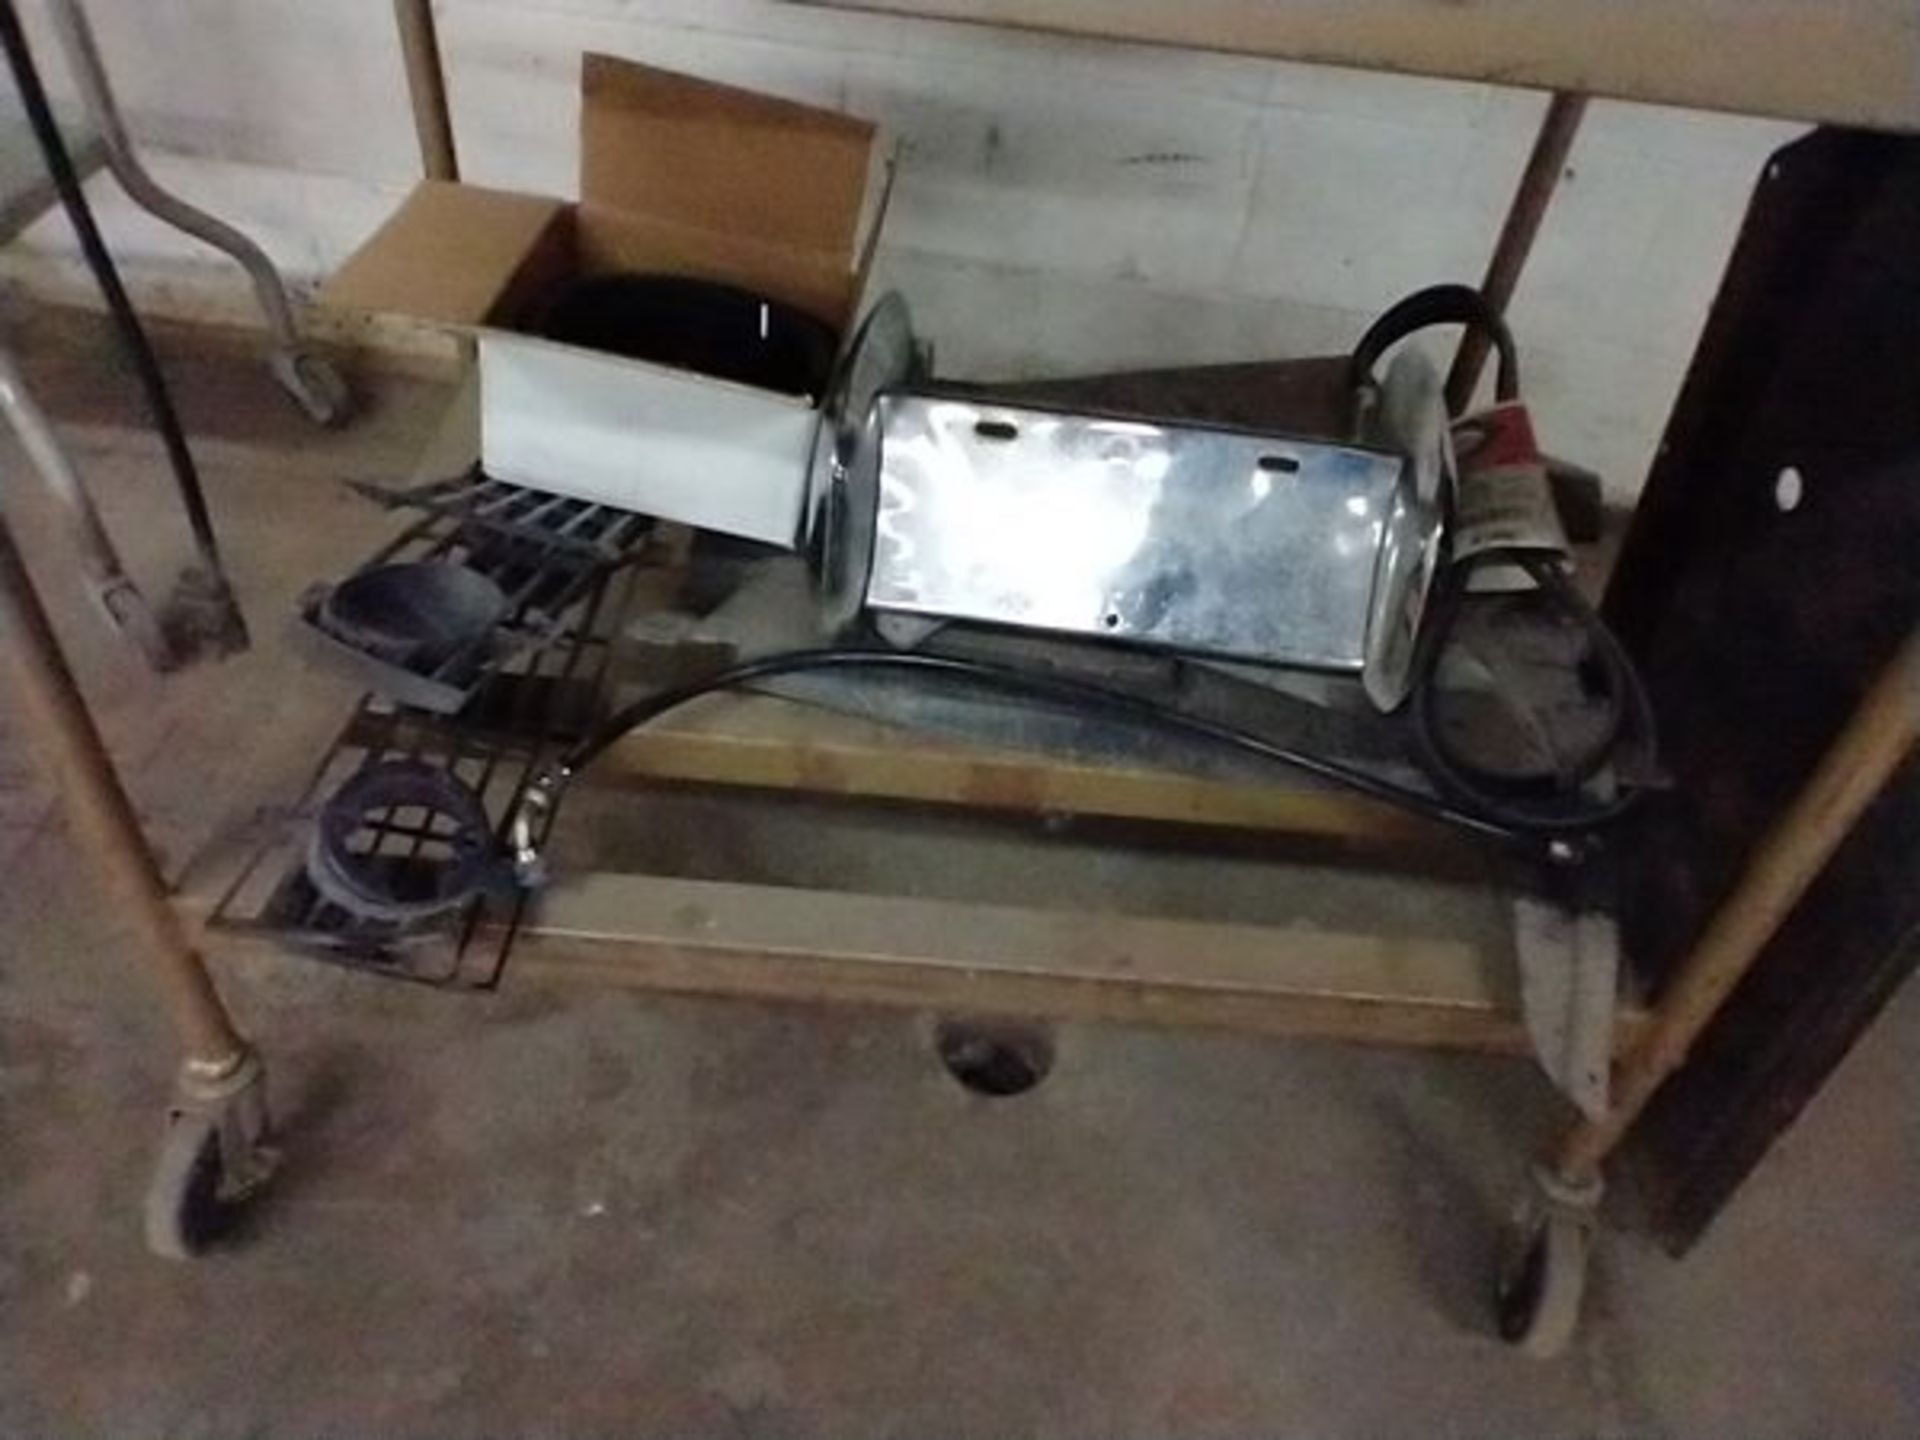 LOT OF VINTAGE CAR PARTS ON CART - Image 12 of 12